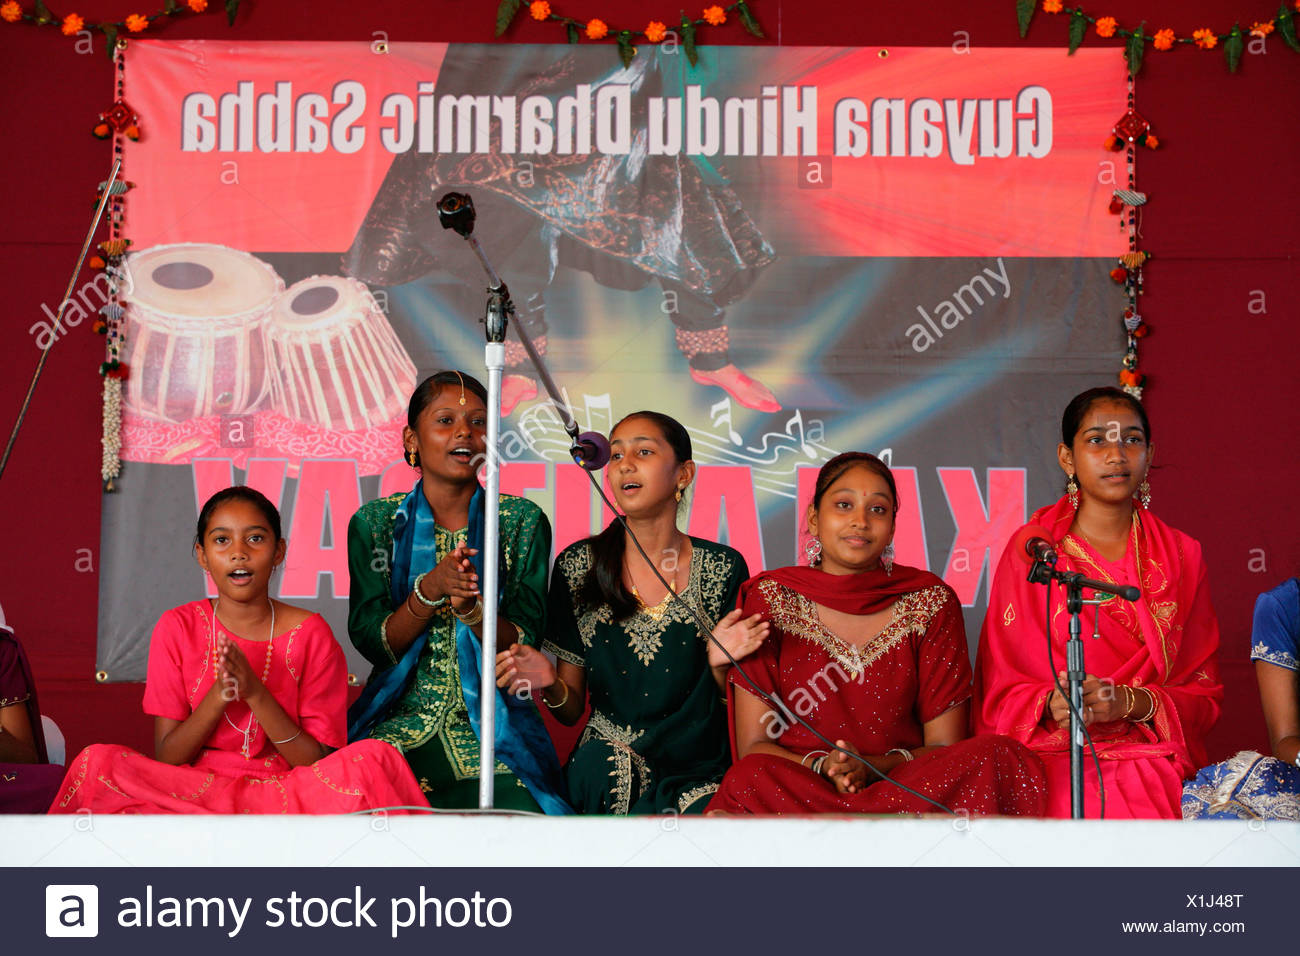 Musicians of Indian ethnicity at a Hindu Festival, Georgetown, Guyana, South America - Stock Image